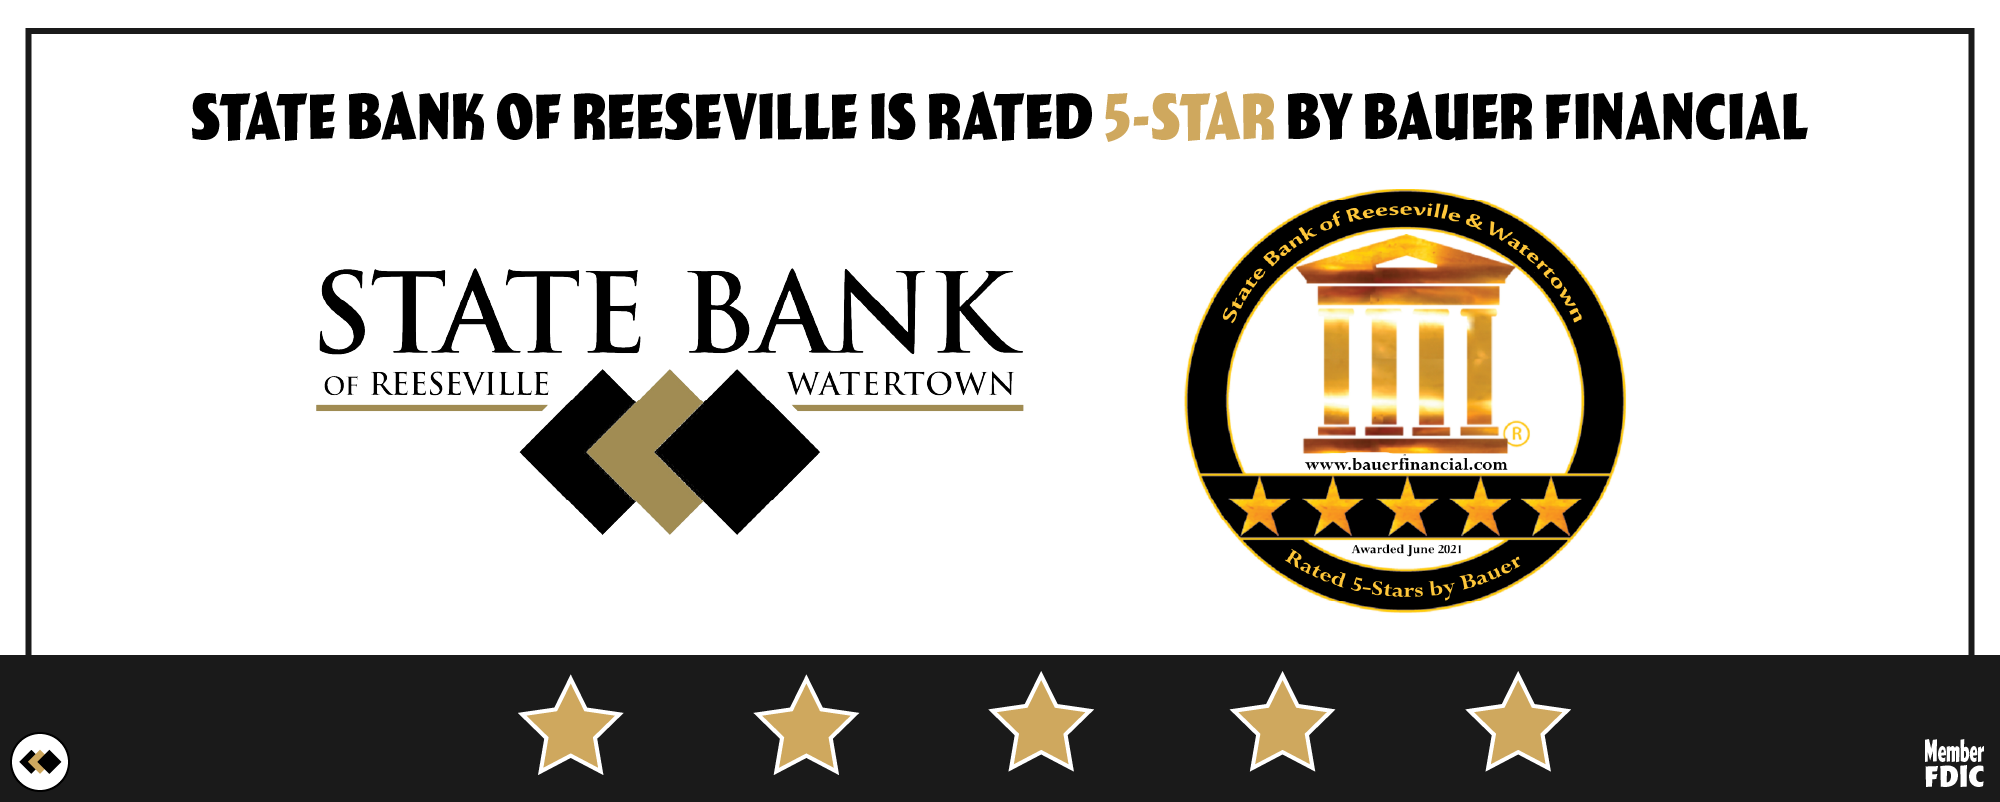 State Bank of Reeseville is Rated 5-Stars by Bauer Financial. As a local bank in southern Wisconsin we know the importance of providing our customers with a safe secure and reliable banking experience.